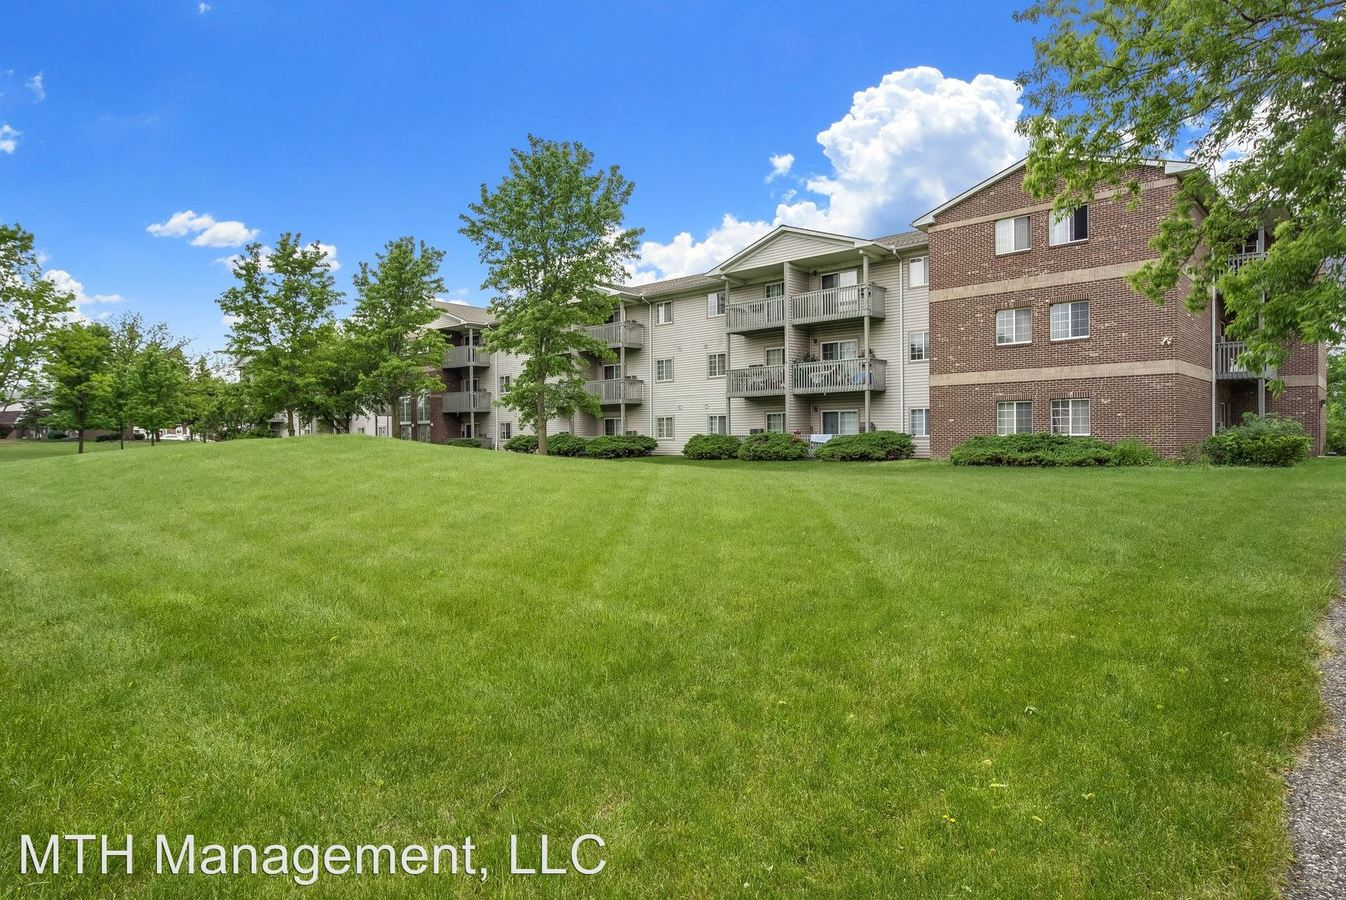 1 Bedroom 1 Bathroom Apartment for rent at Twin Oaks Meadows- Senior Apartments in Lansing, MI